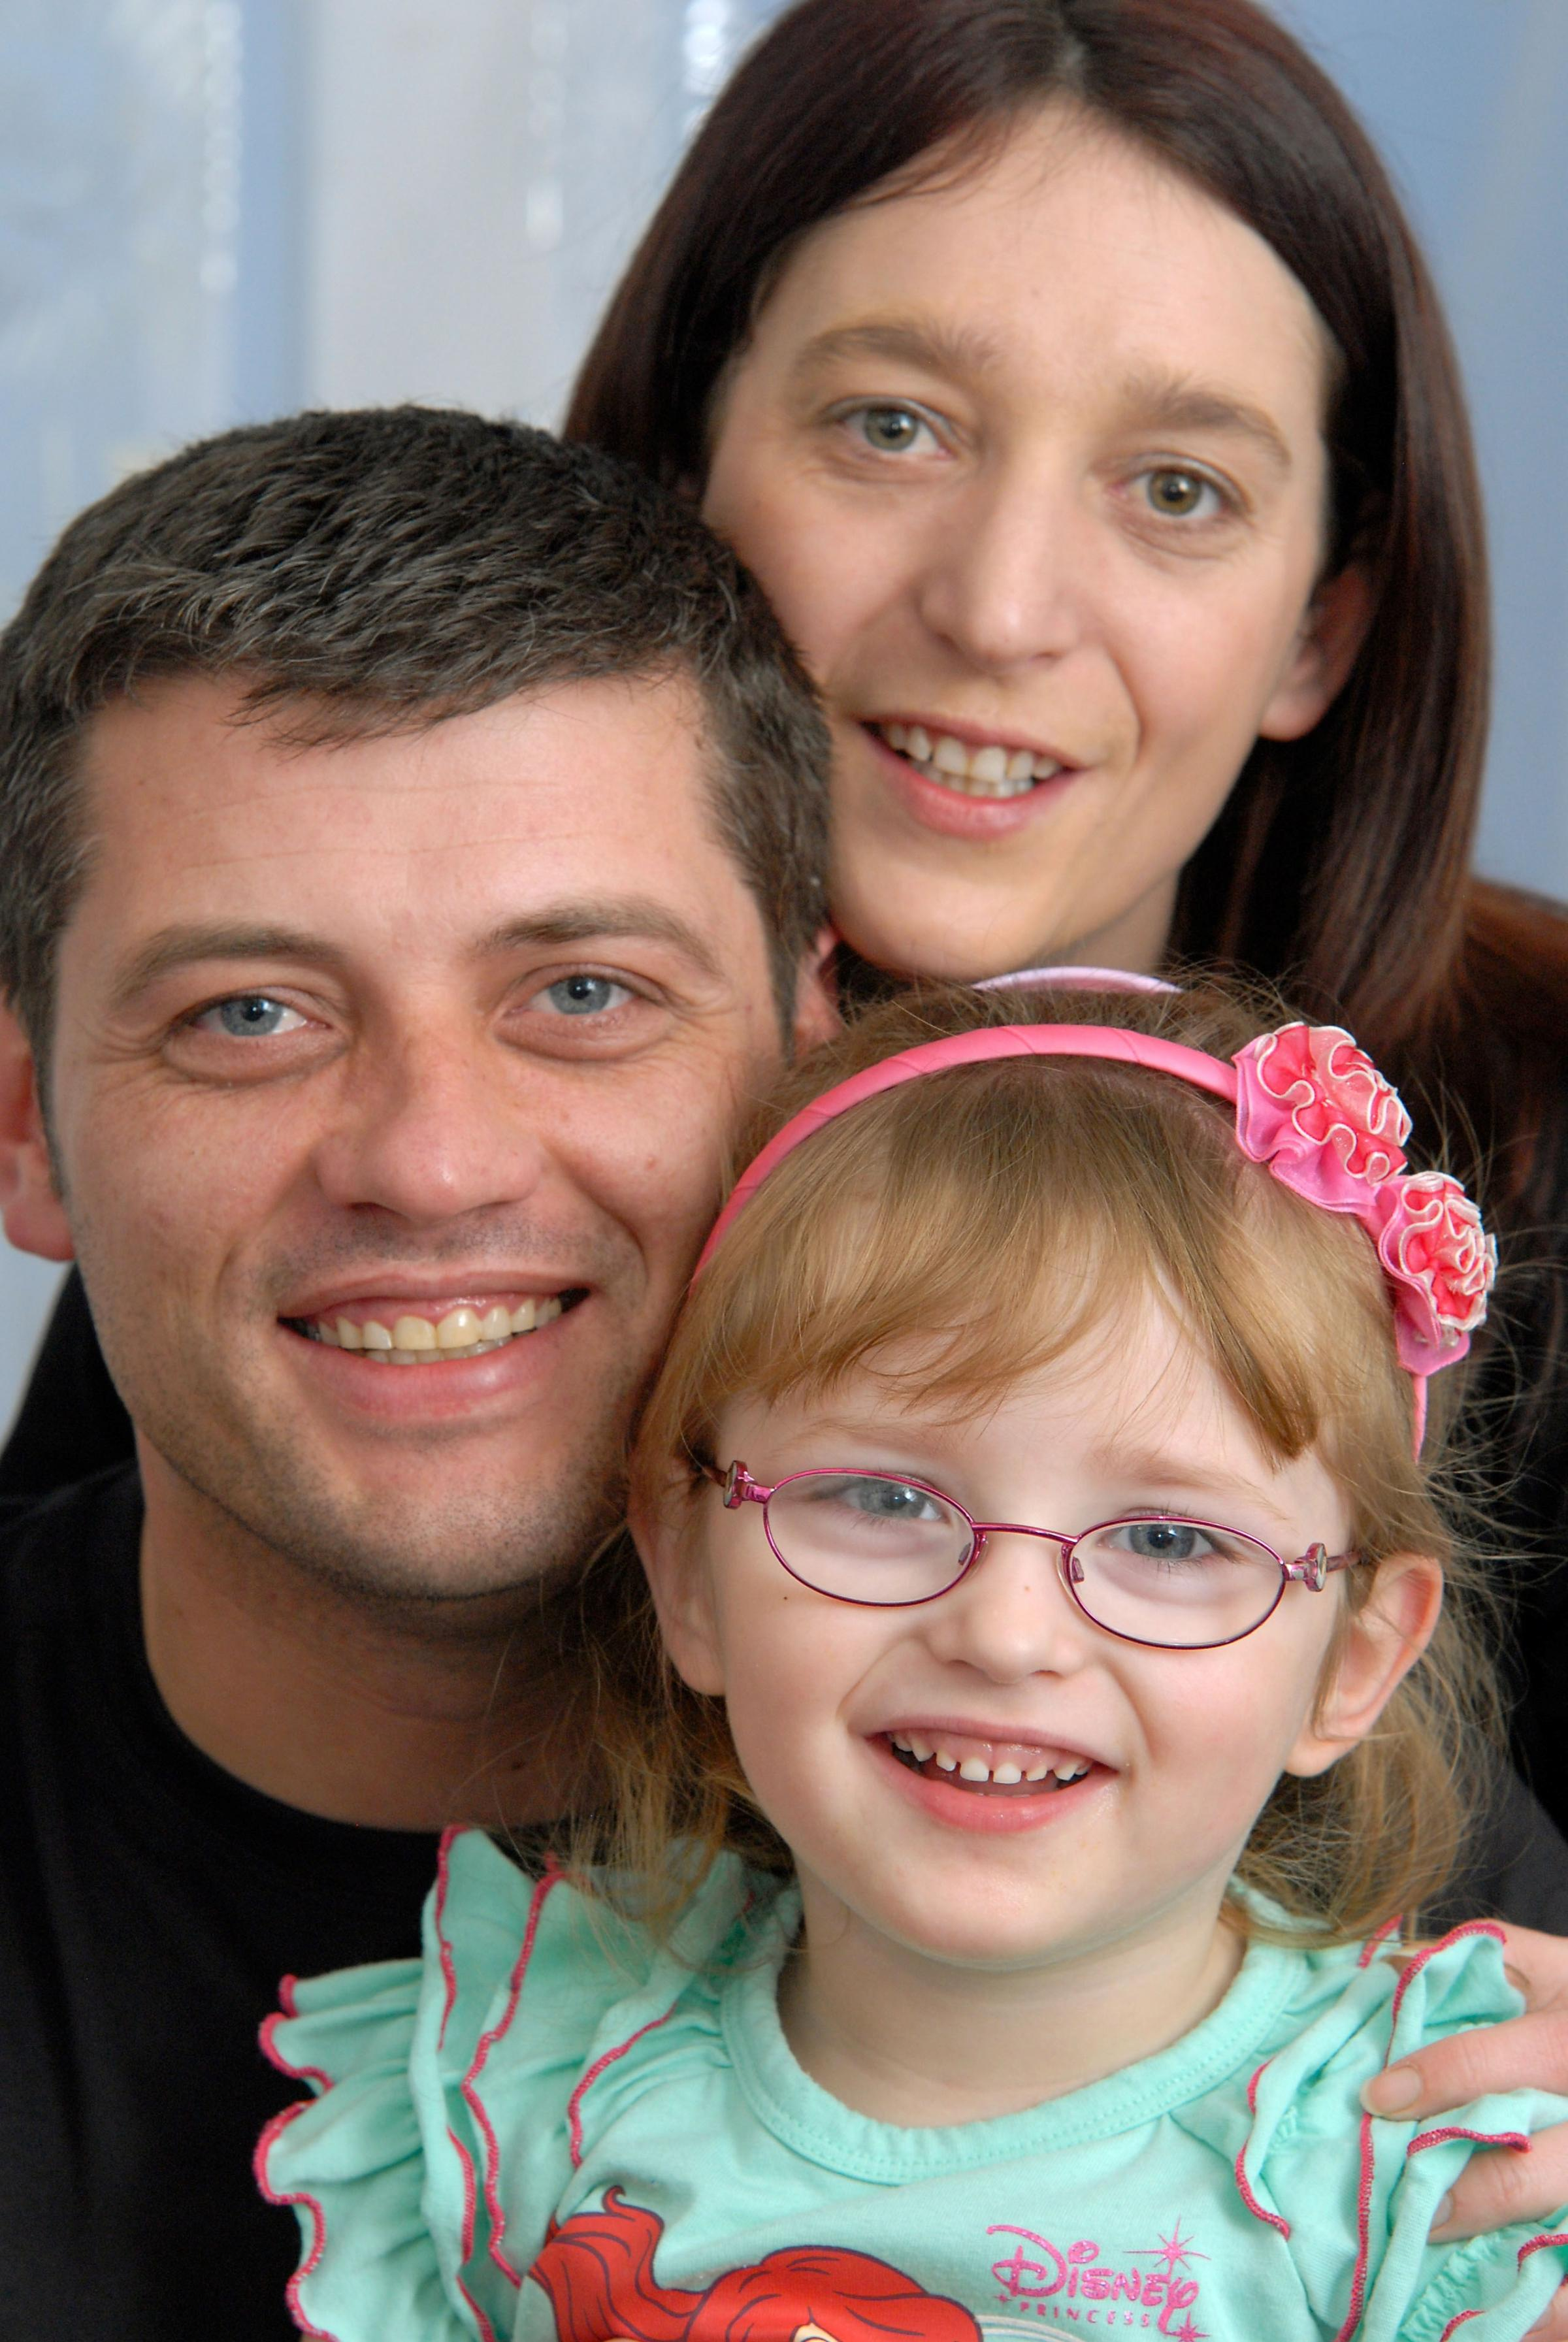 'Happy little girl': Chanelle Robertson, four, with parents Stephen and Jodie Robertson.